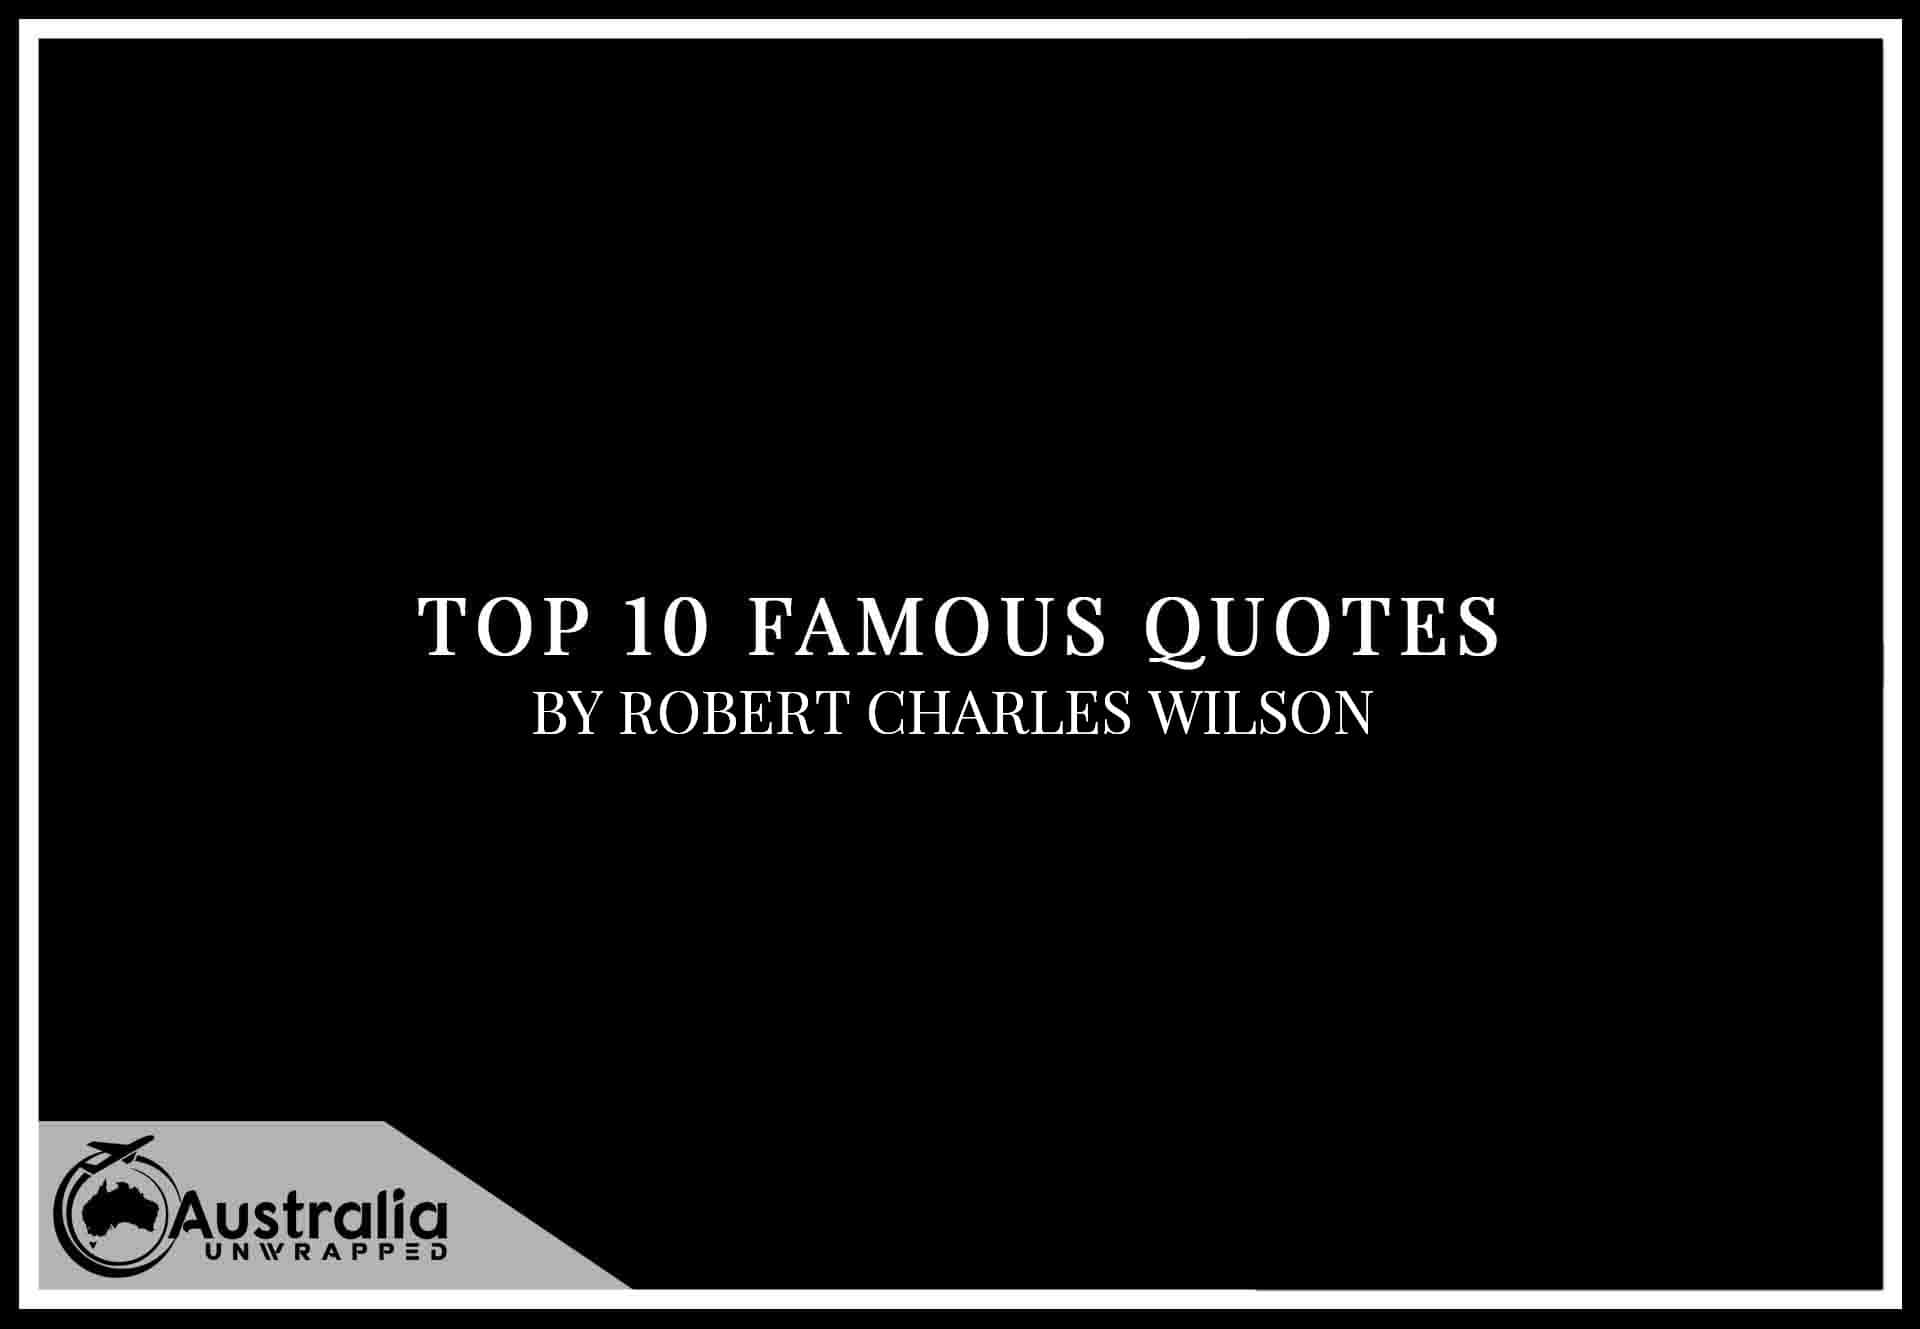 Robert Charles Wilson's Top 10 Popular and Famous Quotes